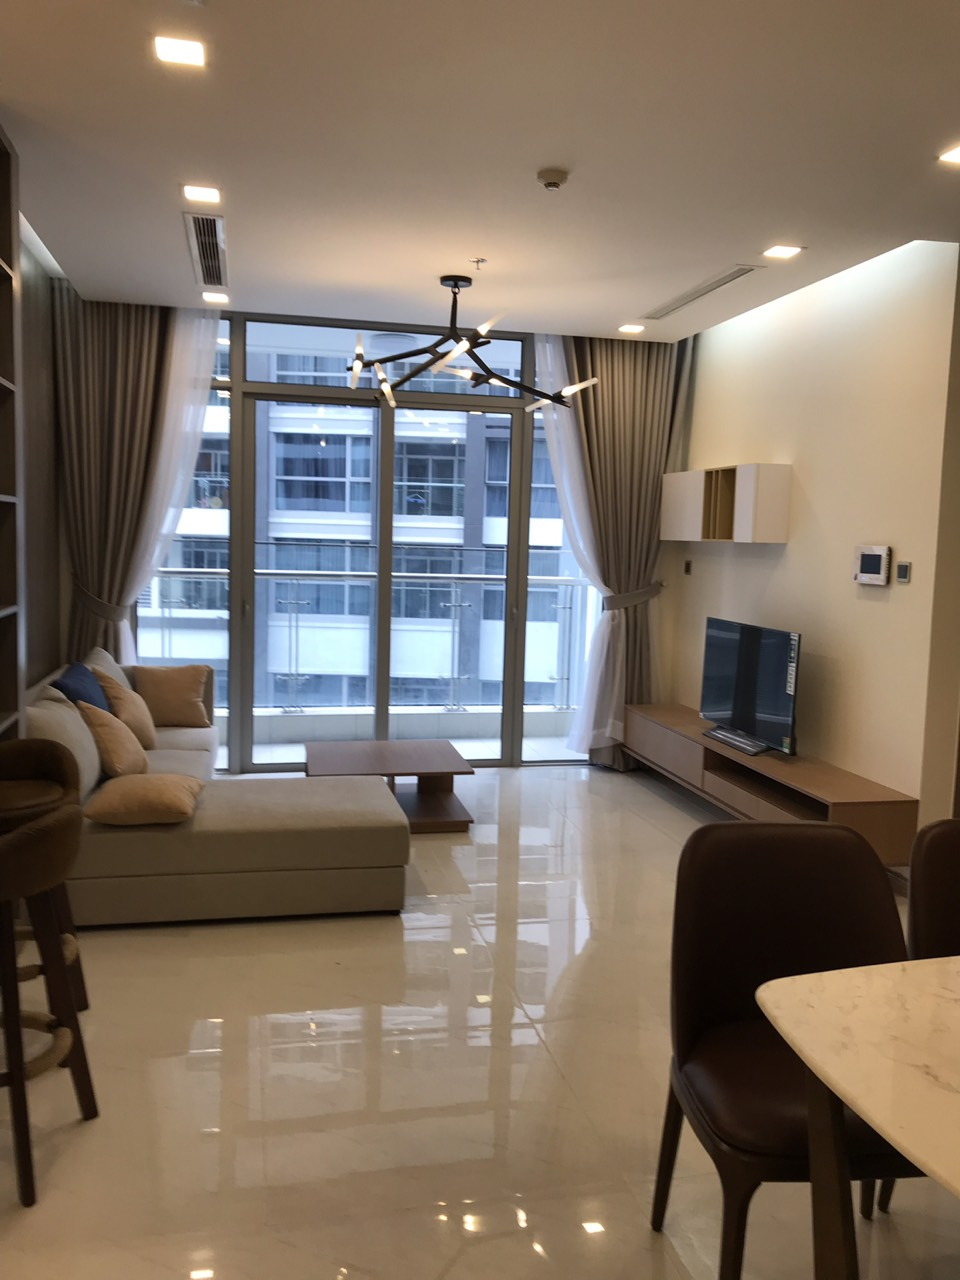 2 bedrooms apartment for rent in vinhomes central park ForApartments For Rent Two Bedroom